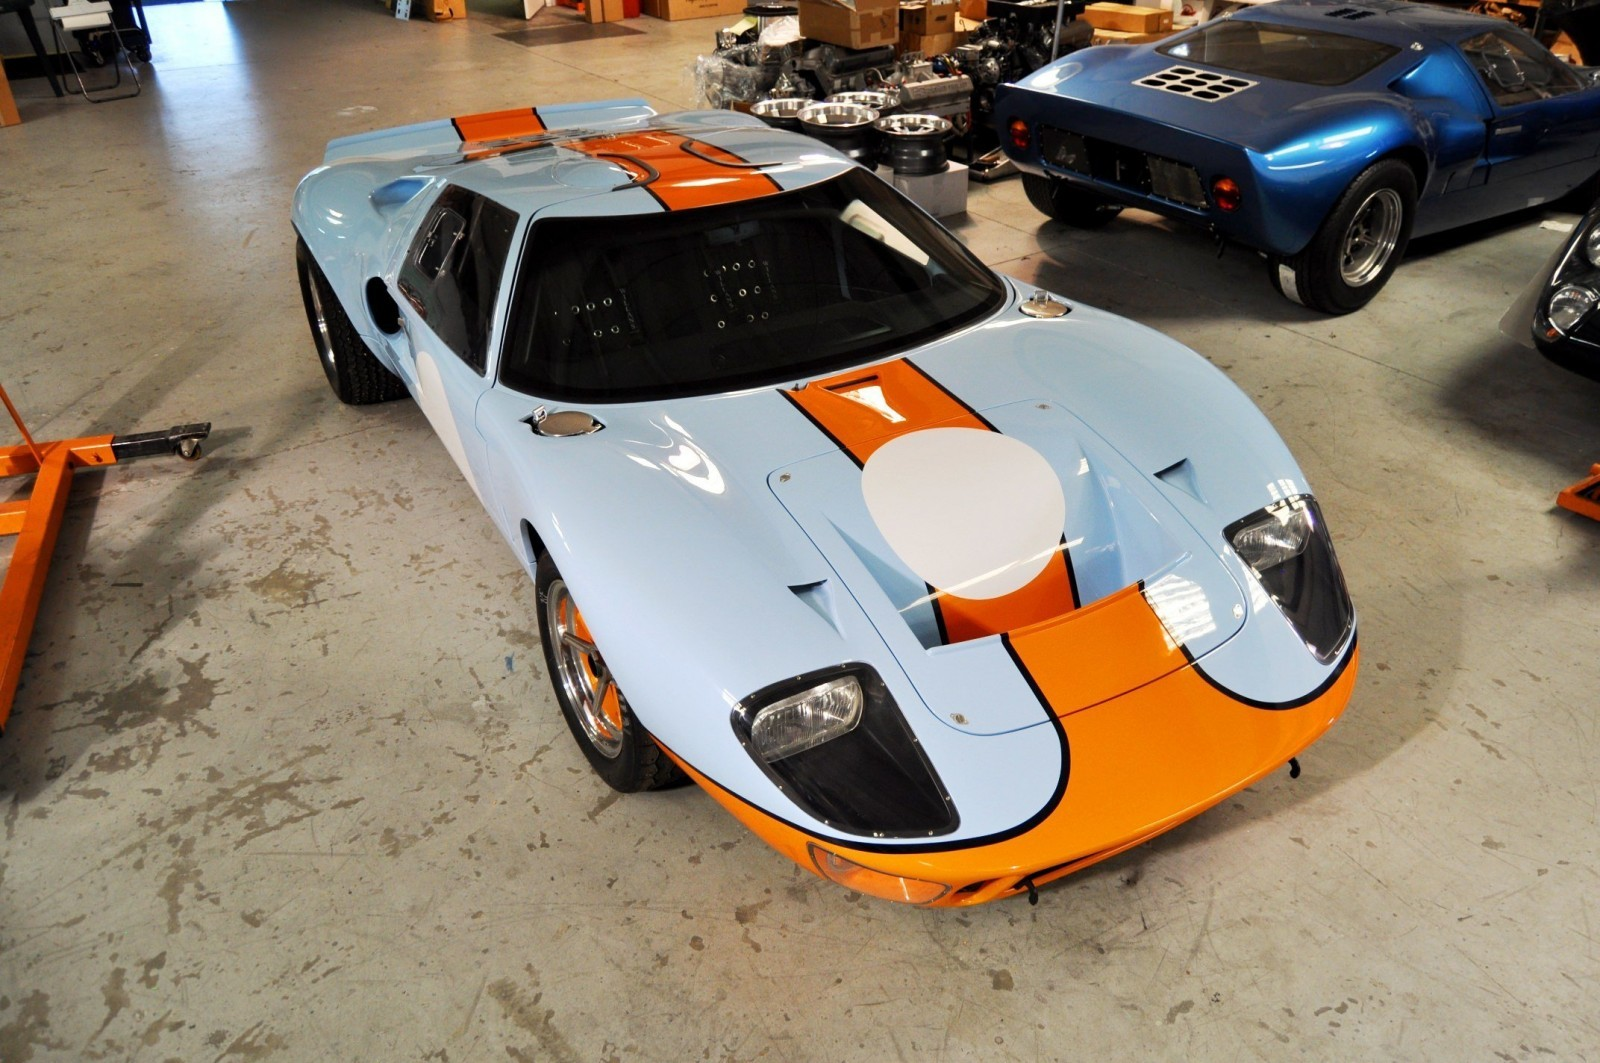 2014 Superformance GT40 Mark I - MEGA Photo Shoot and Ride-Along Videos 32